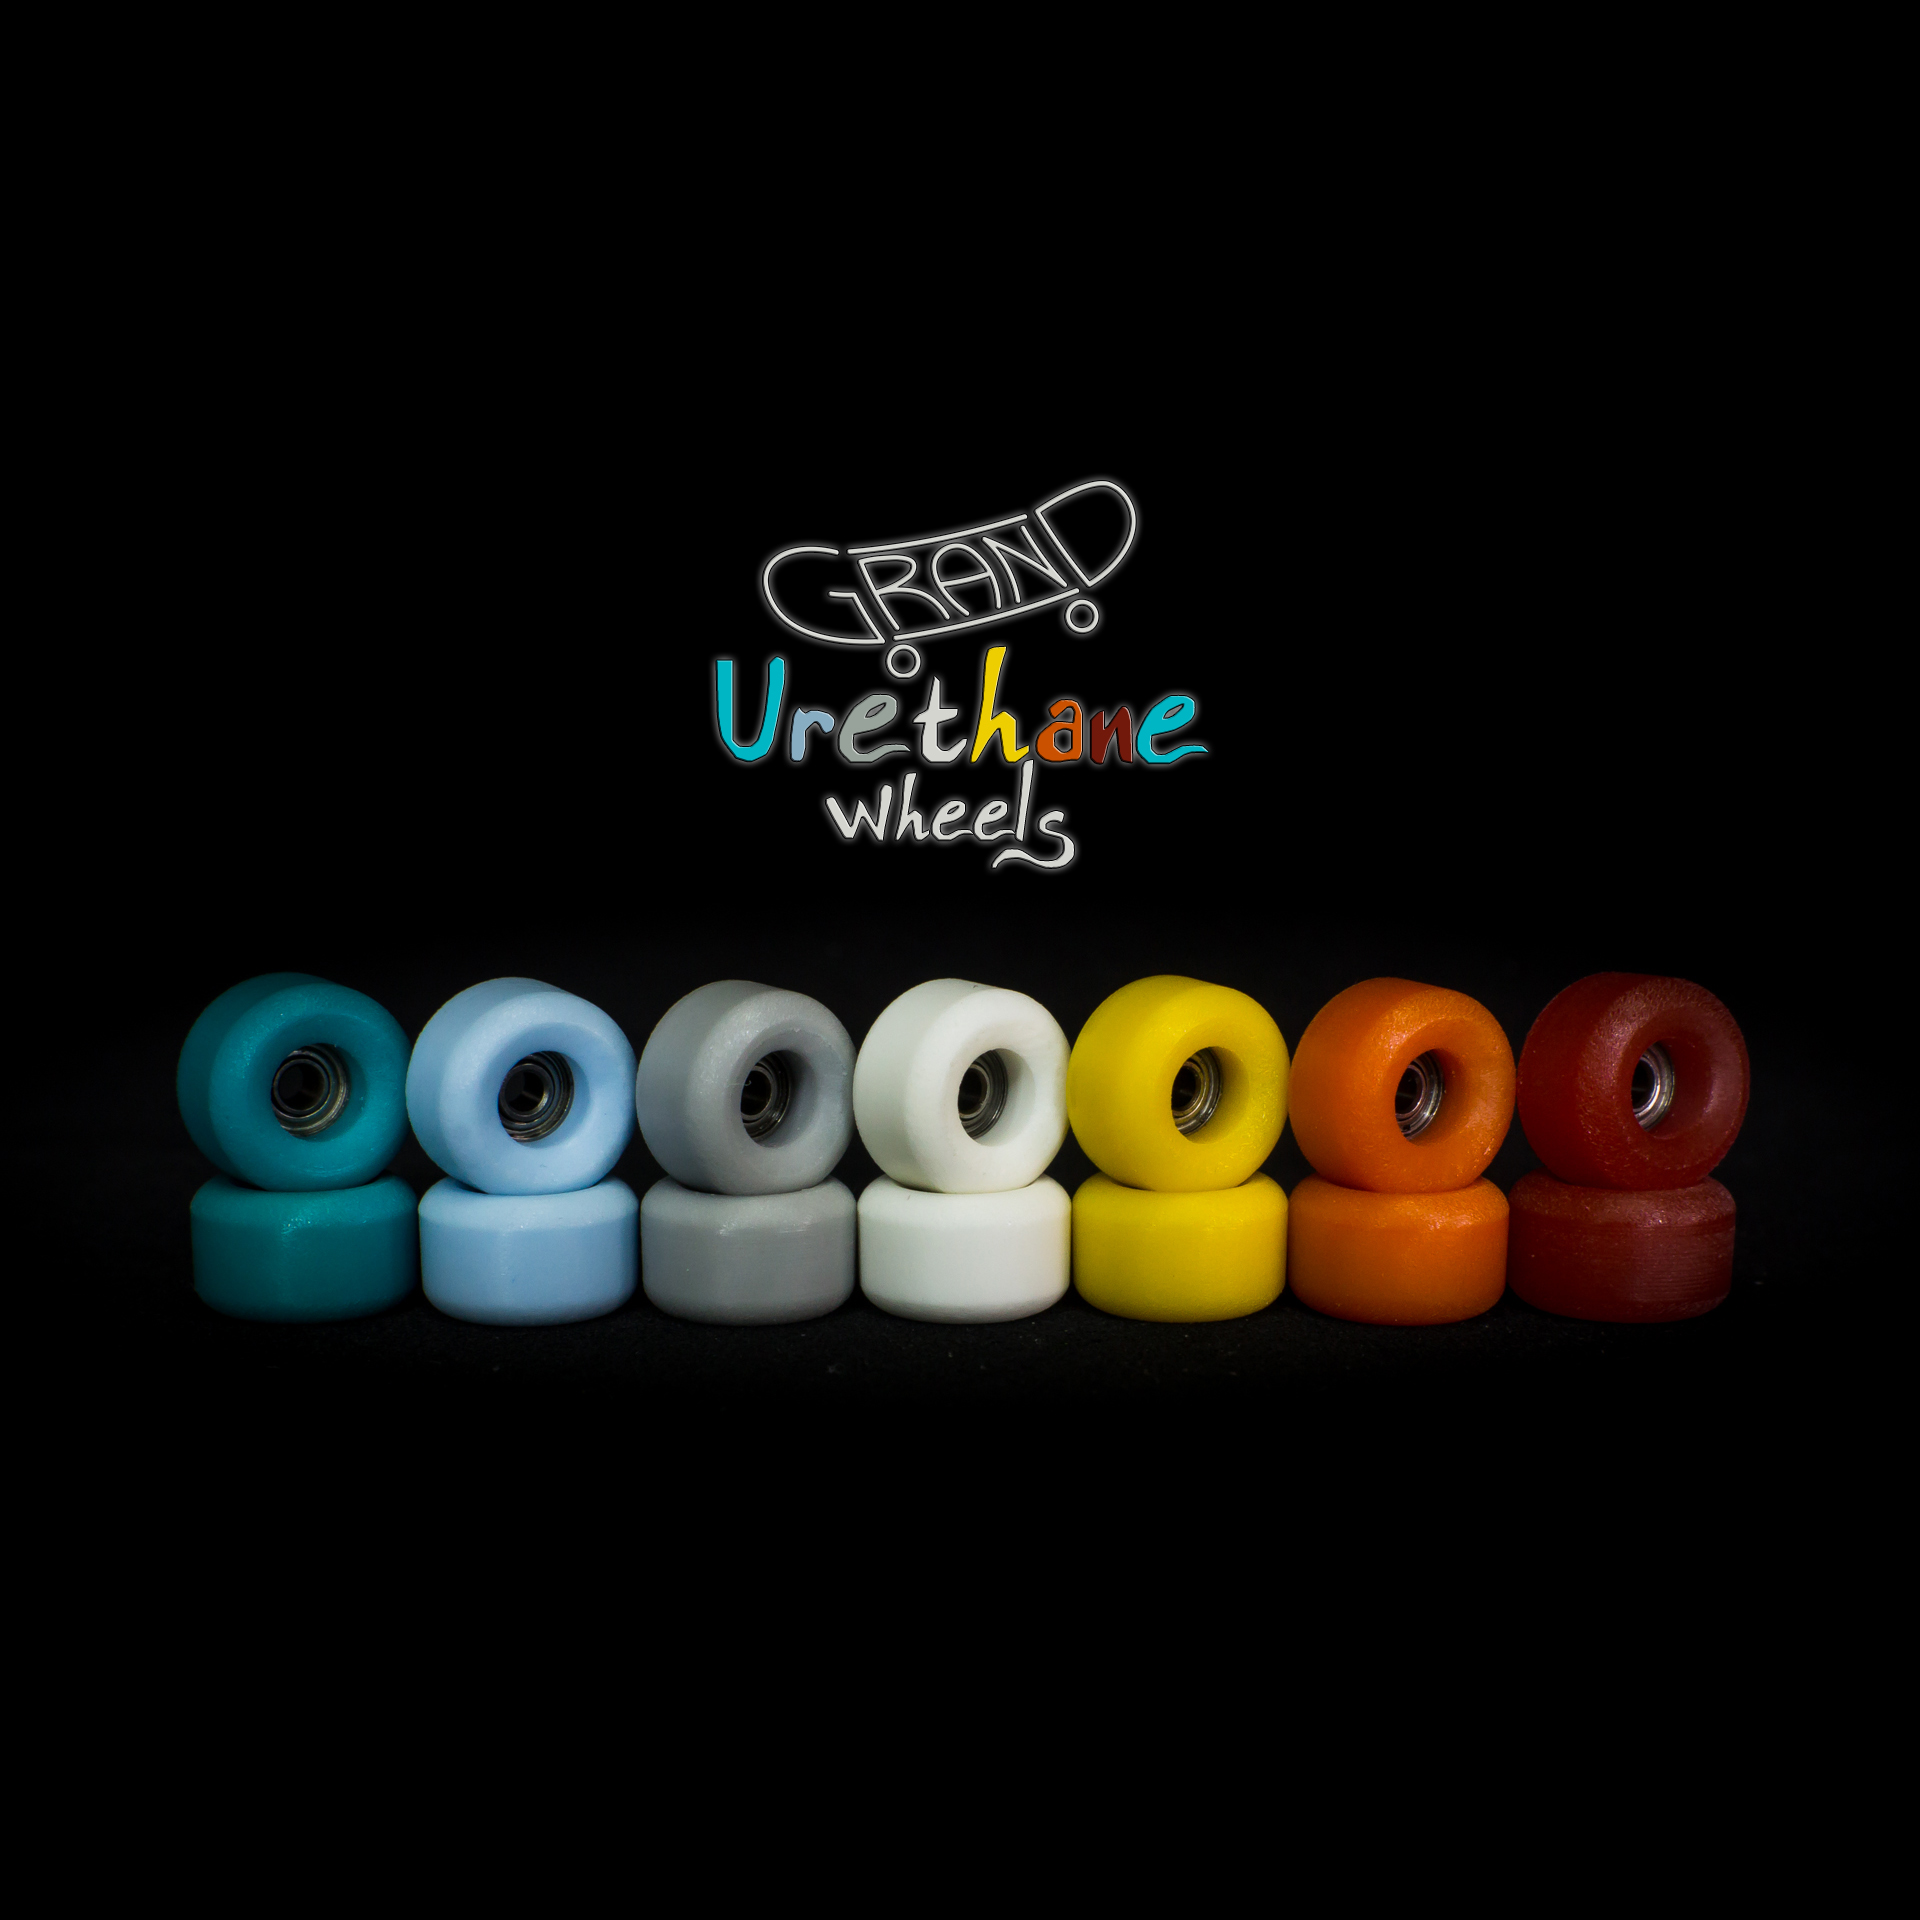 Grand Fingers Urethane Premium Wheels